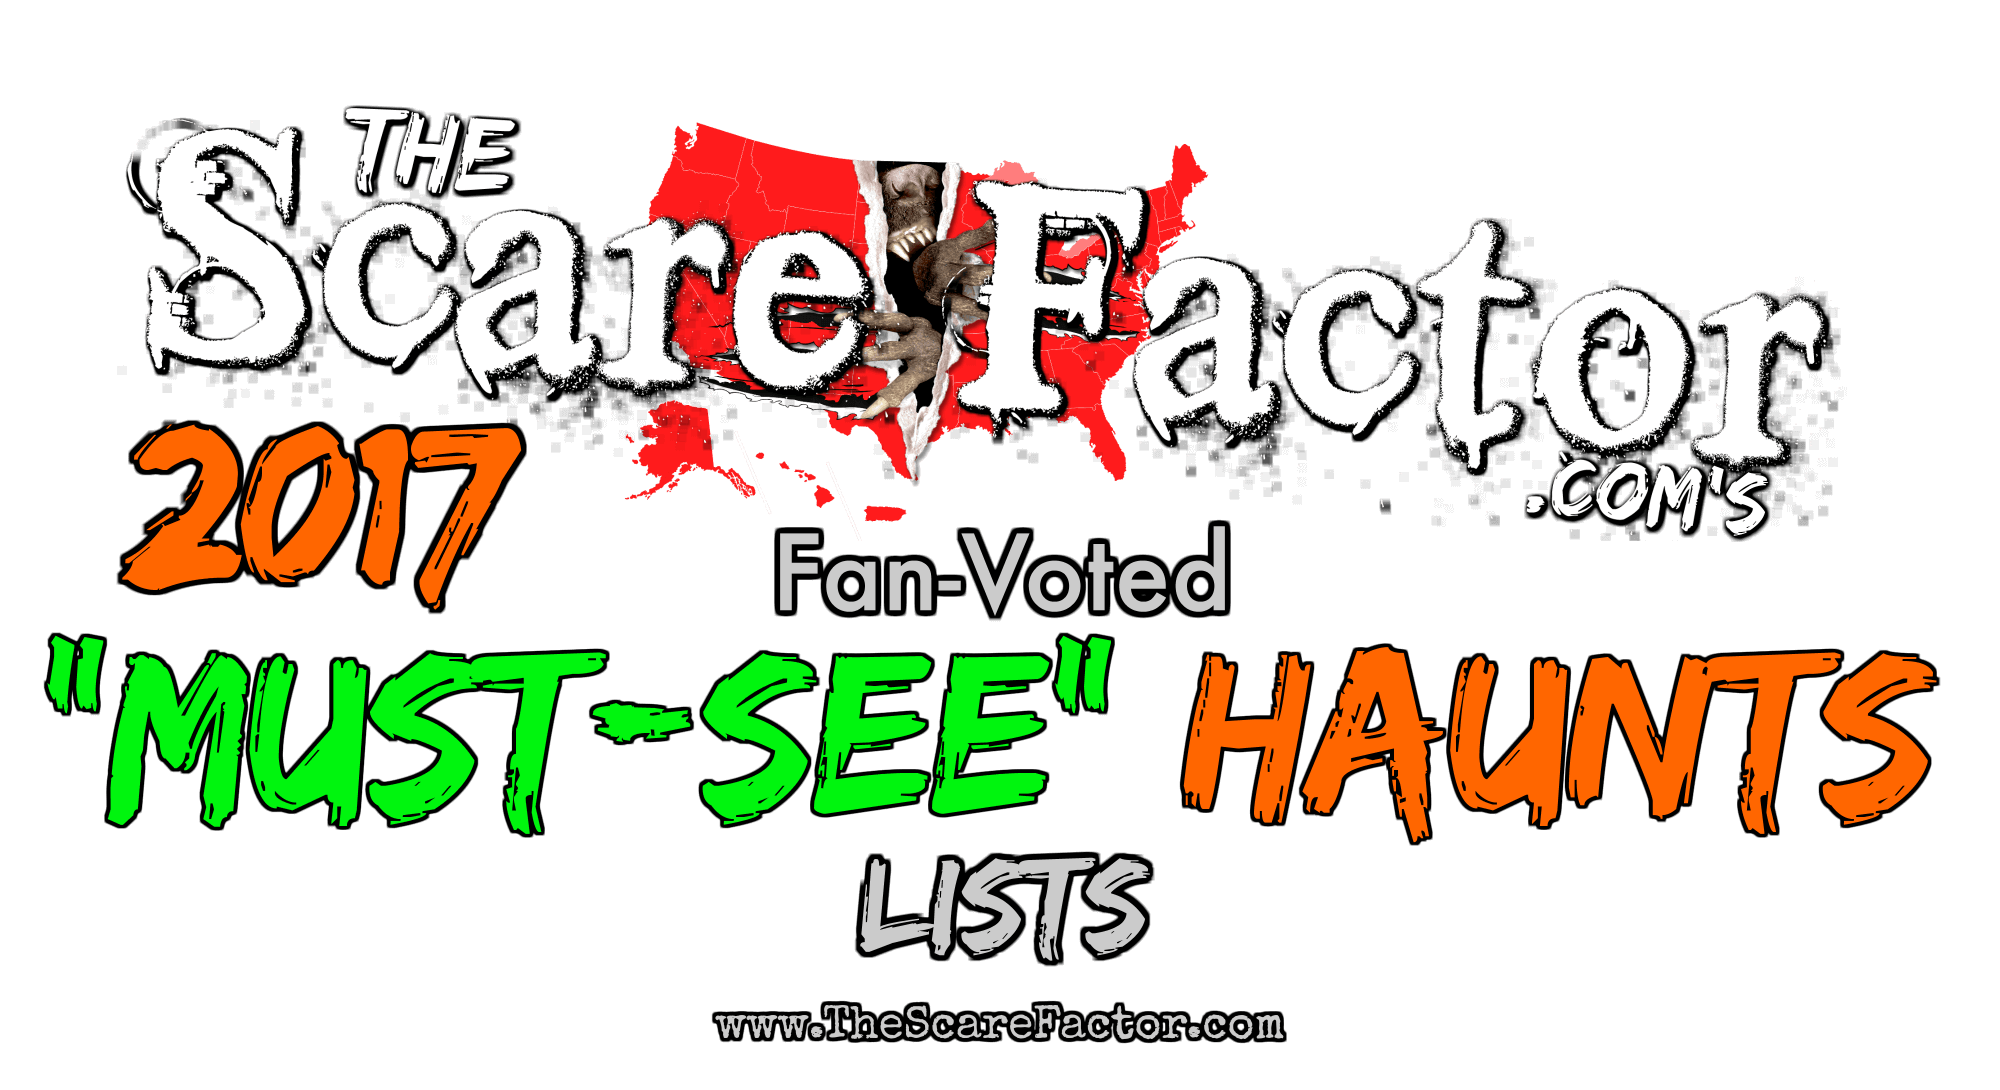 Scare Factor 2017 2017 Top Haunted Houses Lists